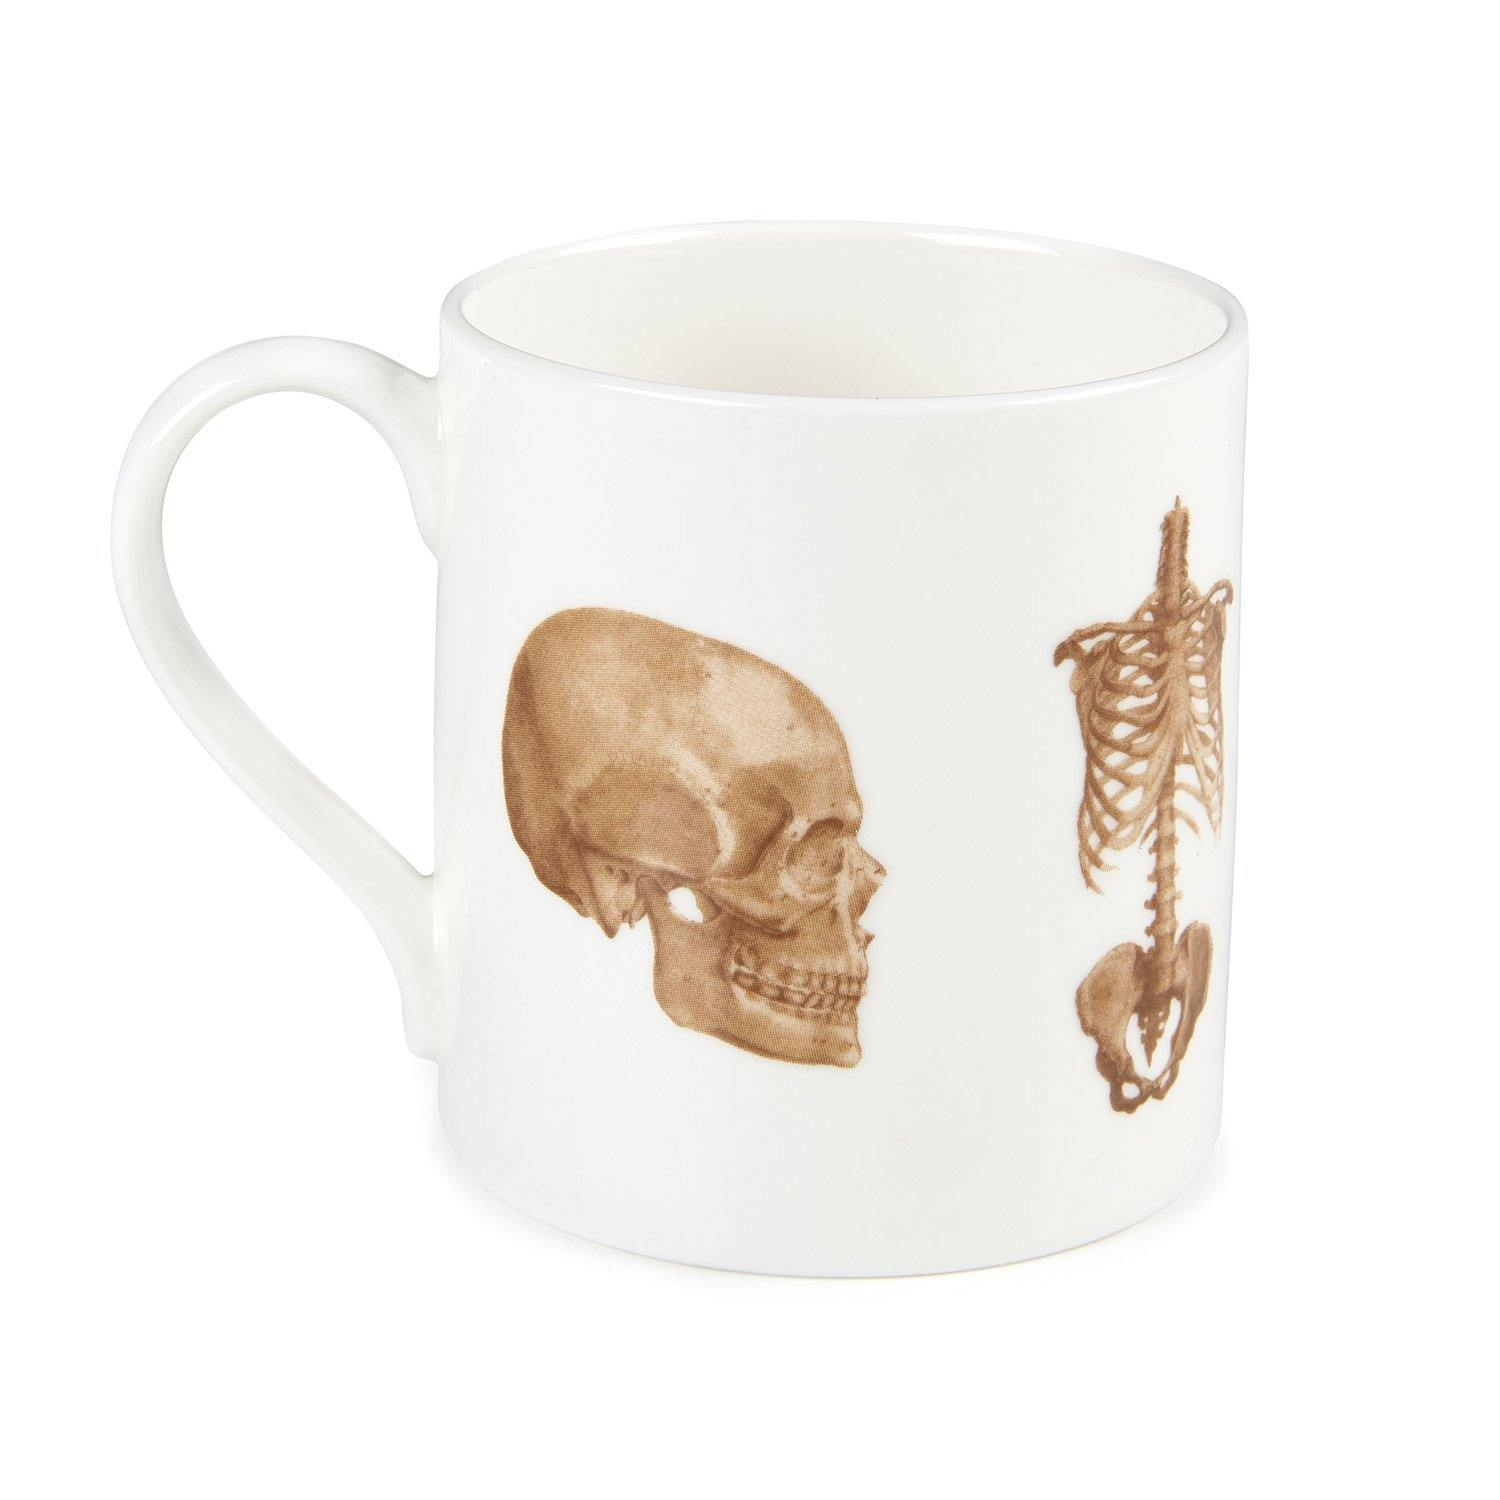 Science Museum Anatomy Mug